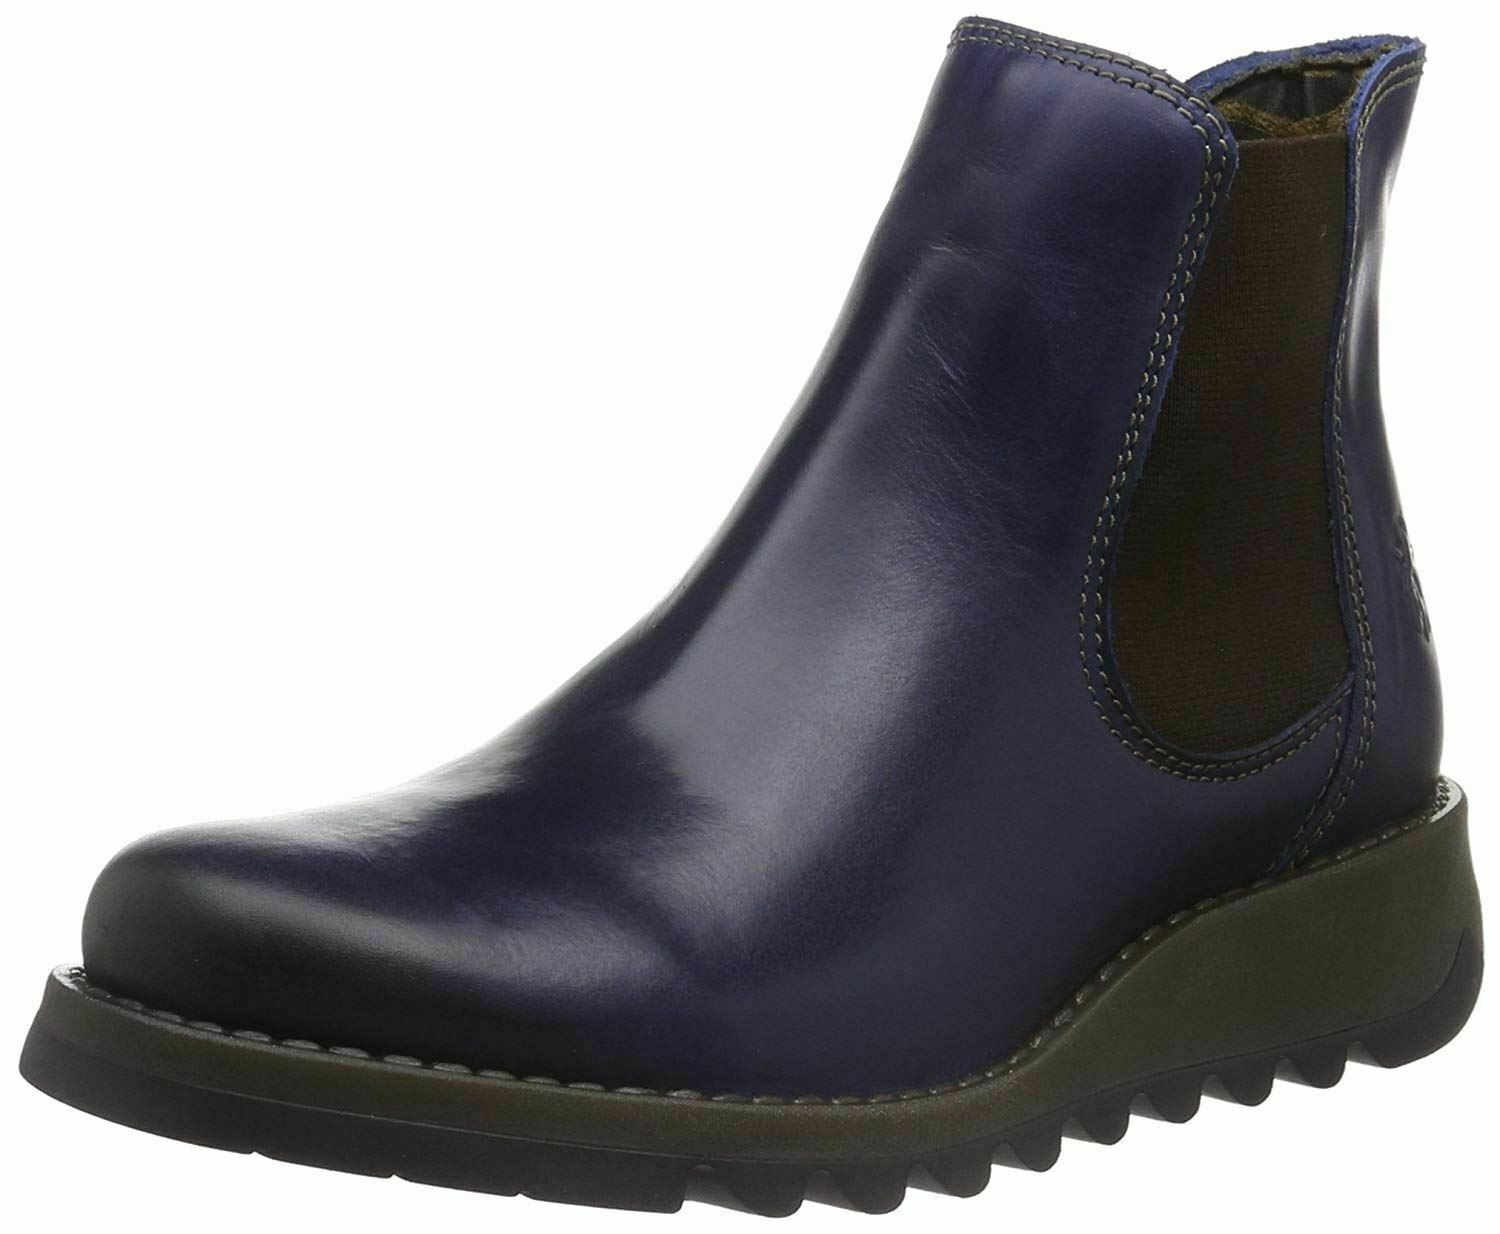 Blau Salv london Leather Fly Stiefel Ankle damen